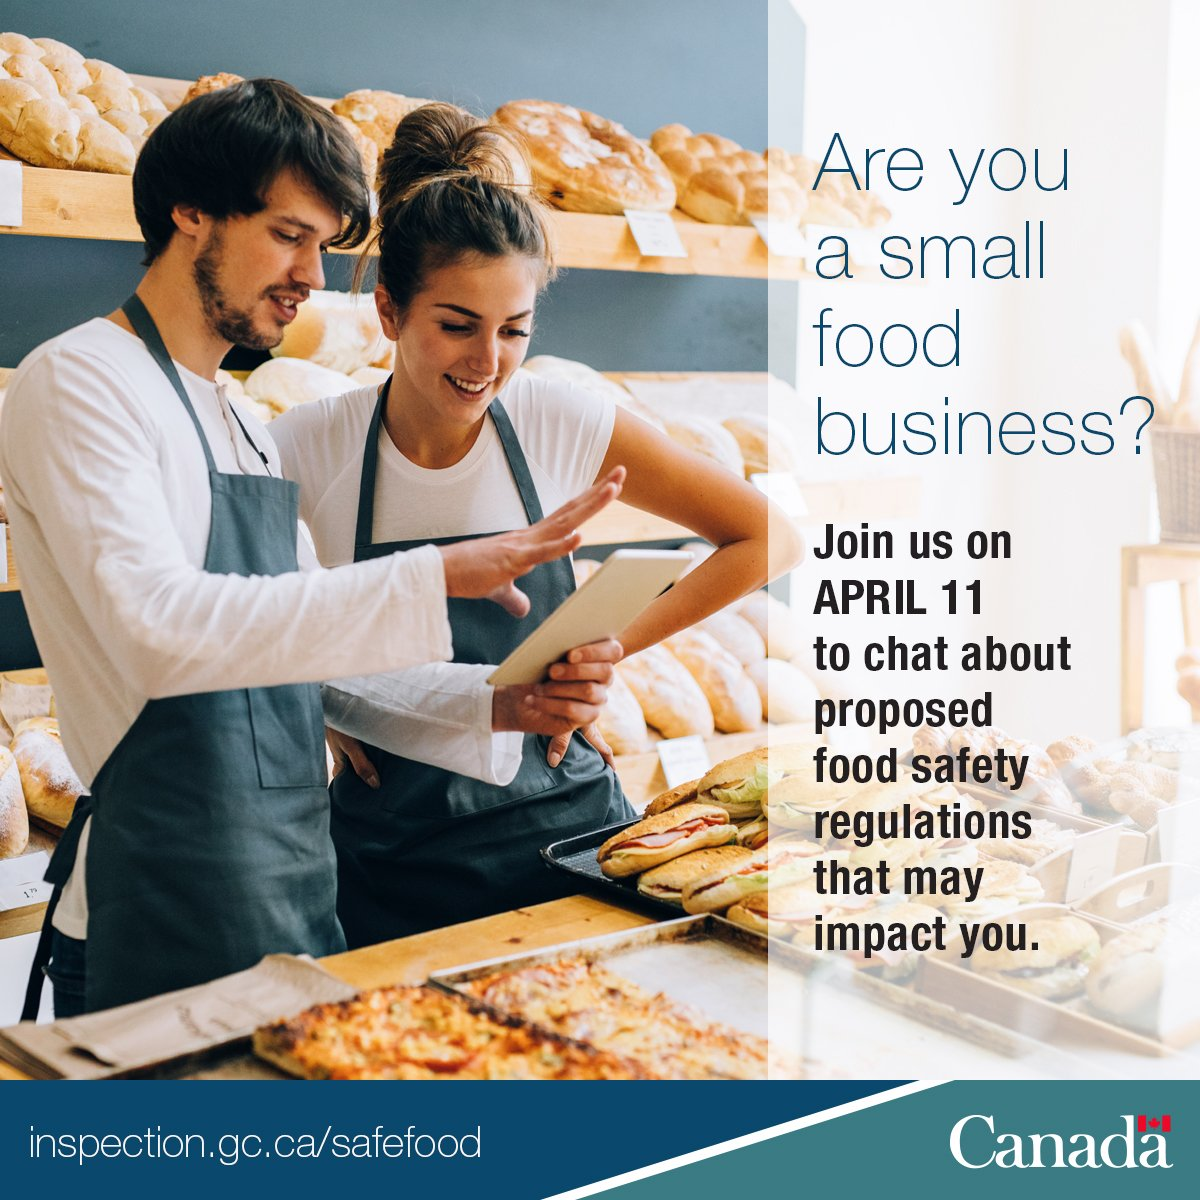 Seeking answers to questions re: #SafeFoodCan regs? Join upcoming live chat on April 11 #foodbiz #SMEPME https://t.co/zbYj1AE3s0 https://t.co/f2rhk1GYKW